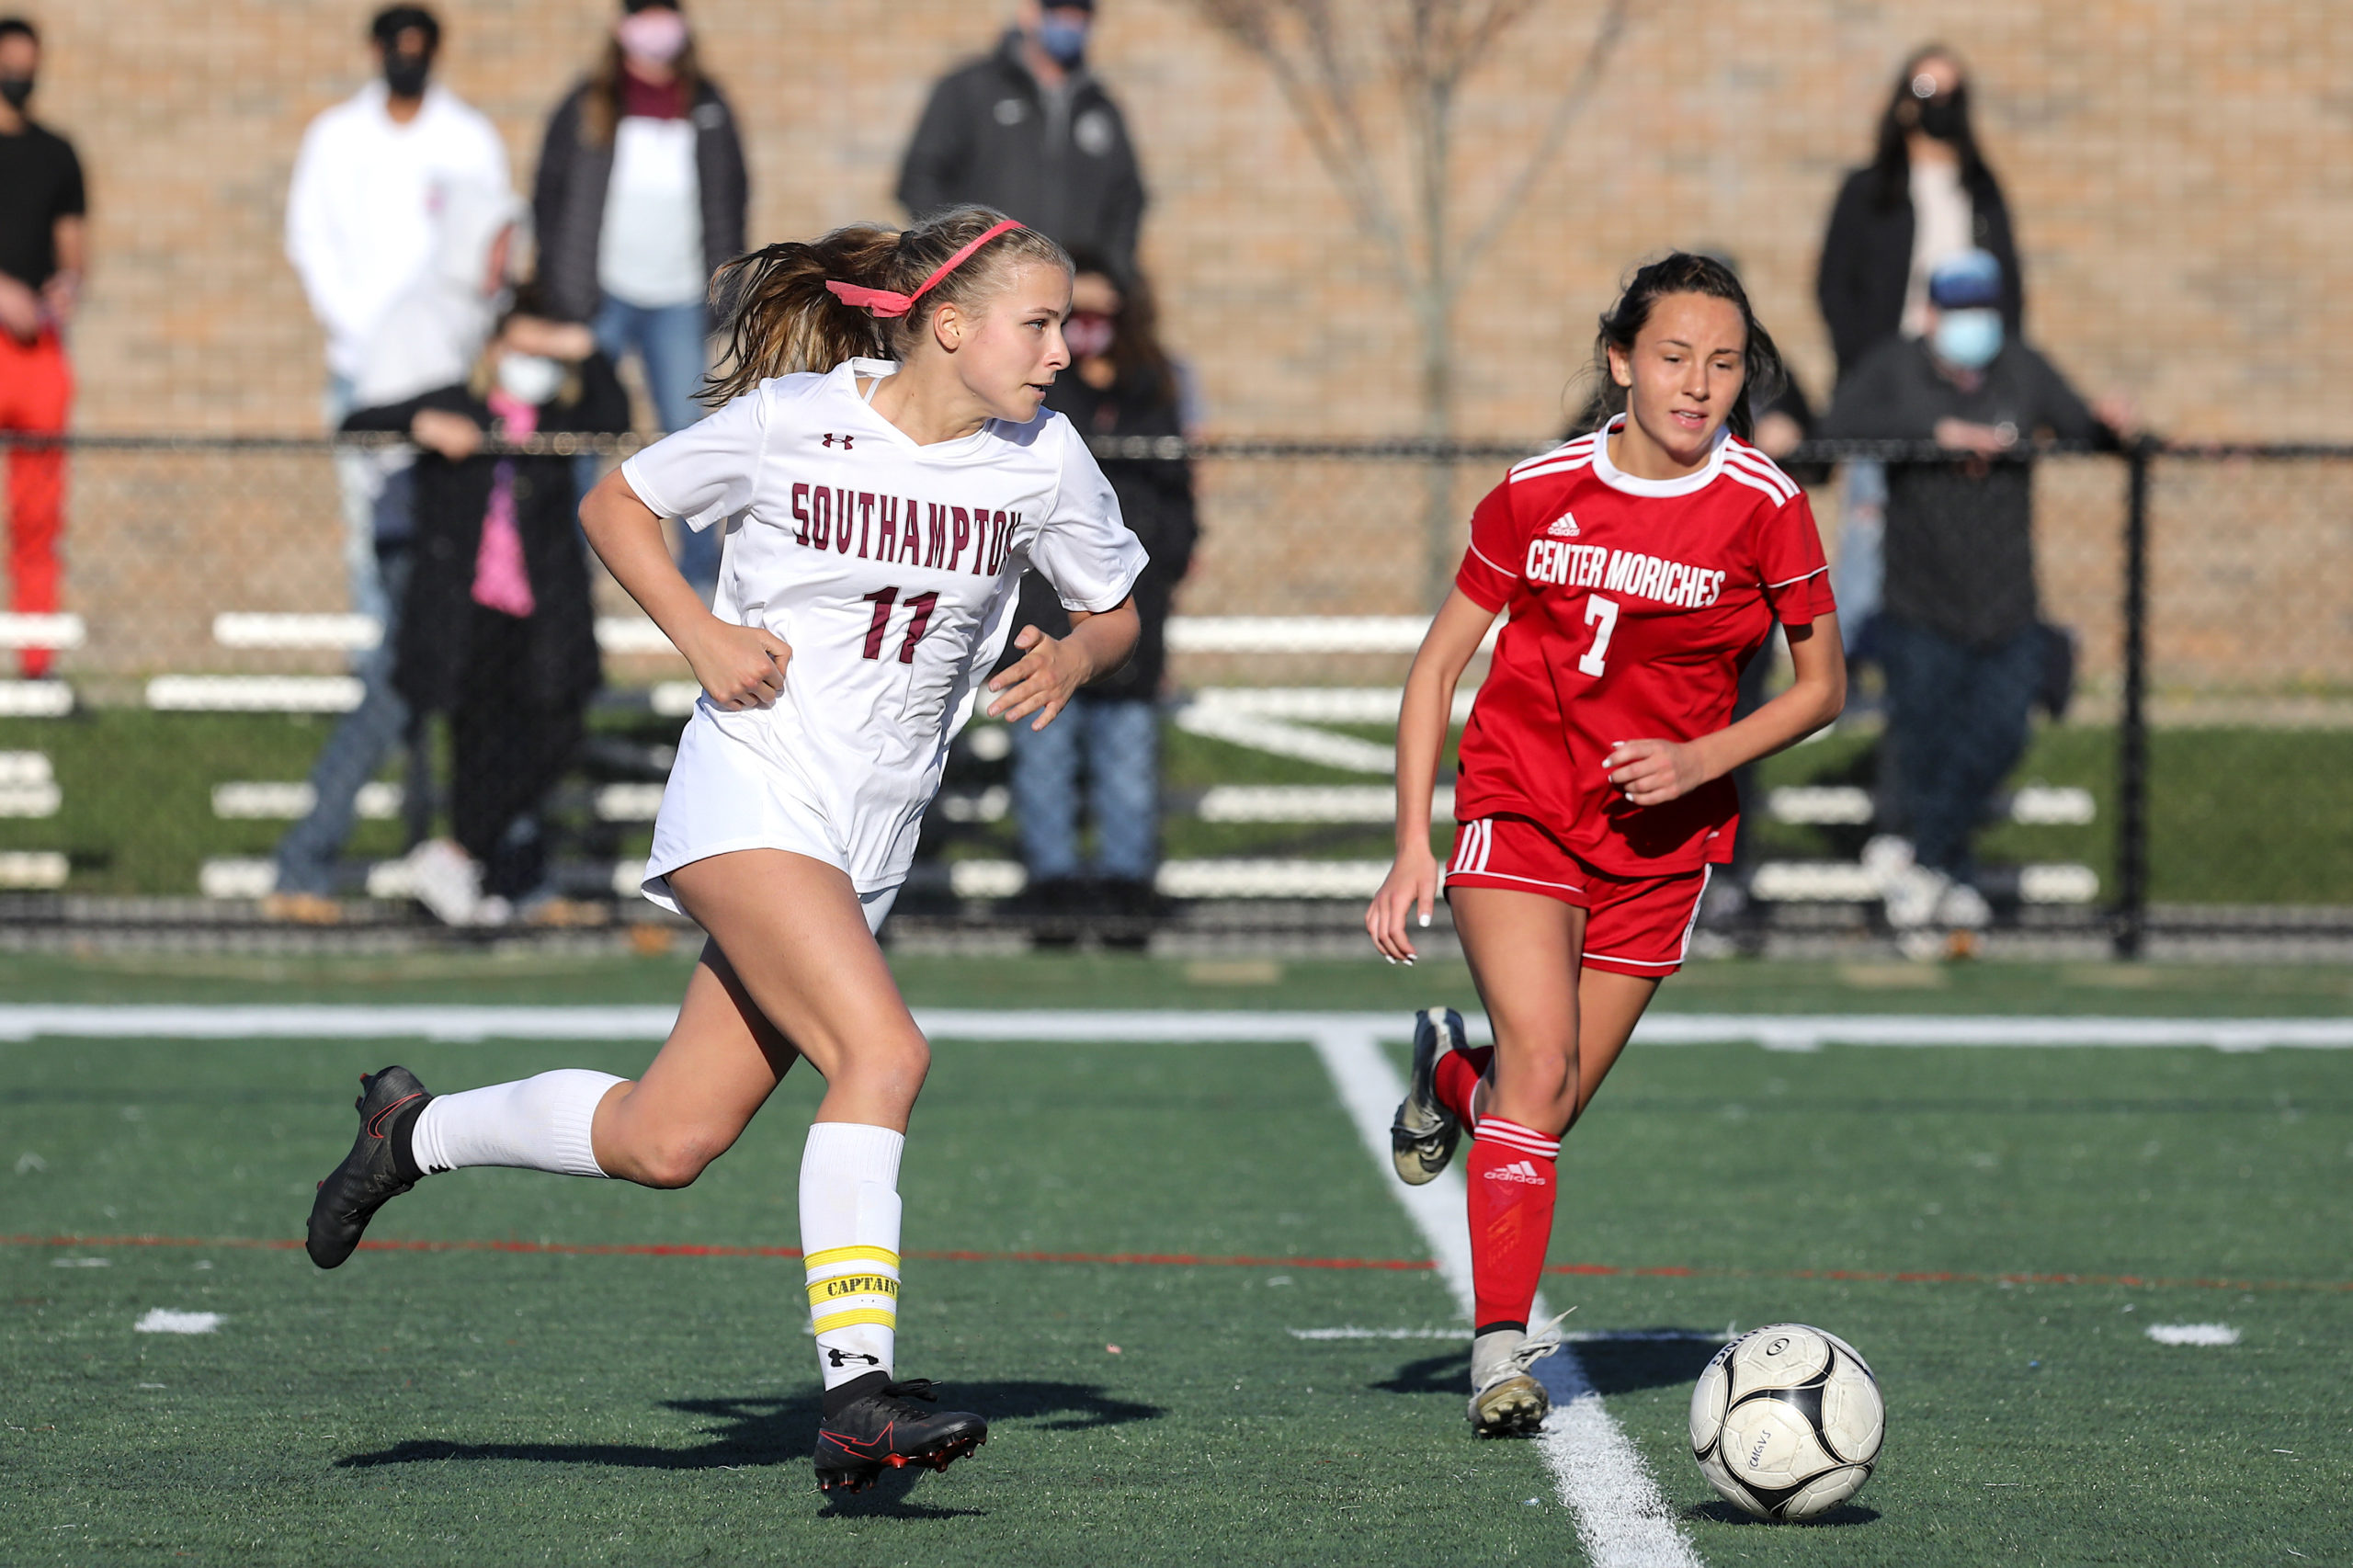 Southampton junior Charlotte Cardel dribbles the ball down the field.